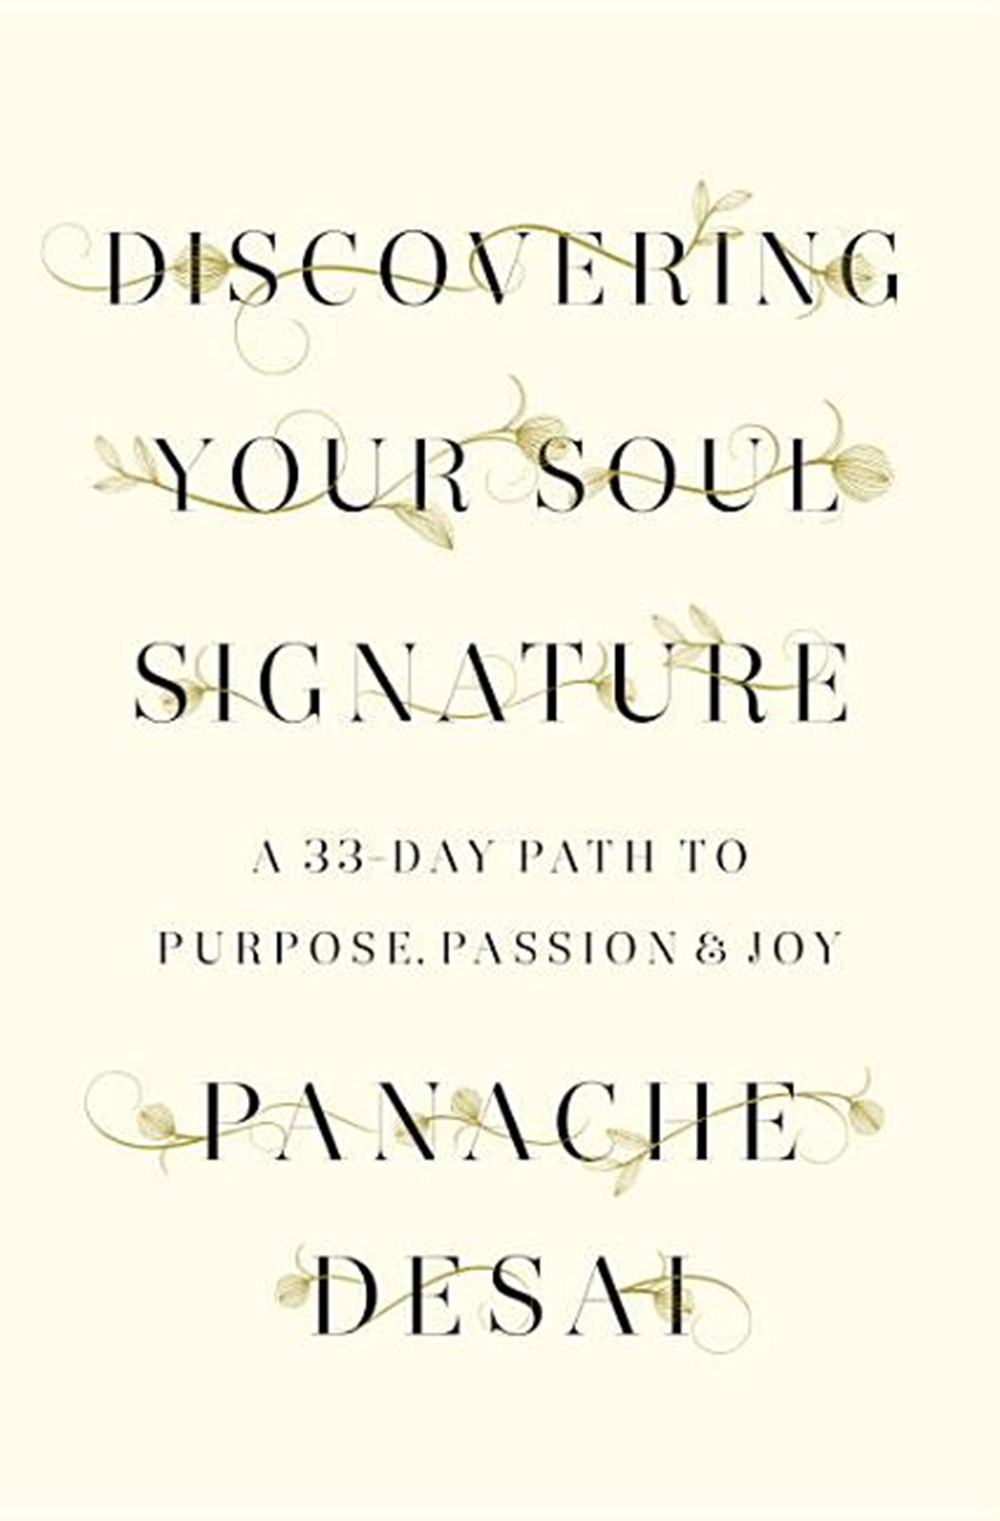 Discovering Your Soul Signature A 33-Day Path to Purpose, Passion & Joy